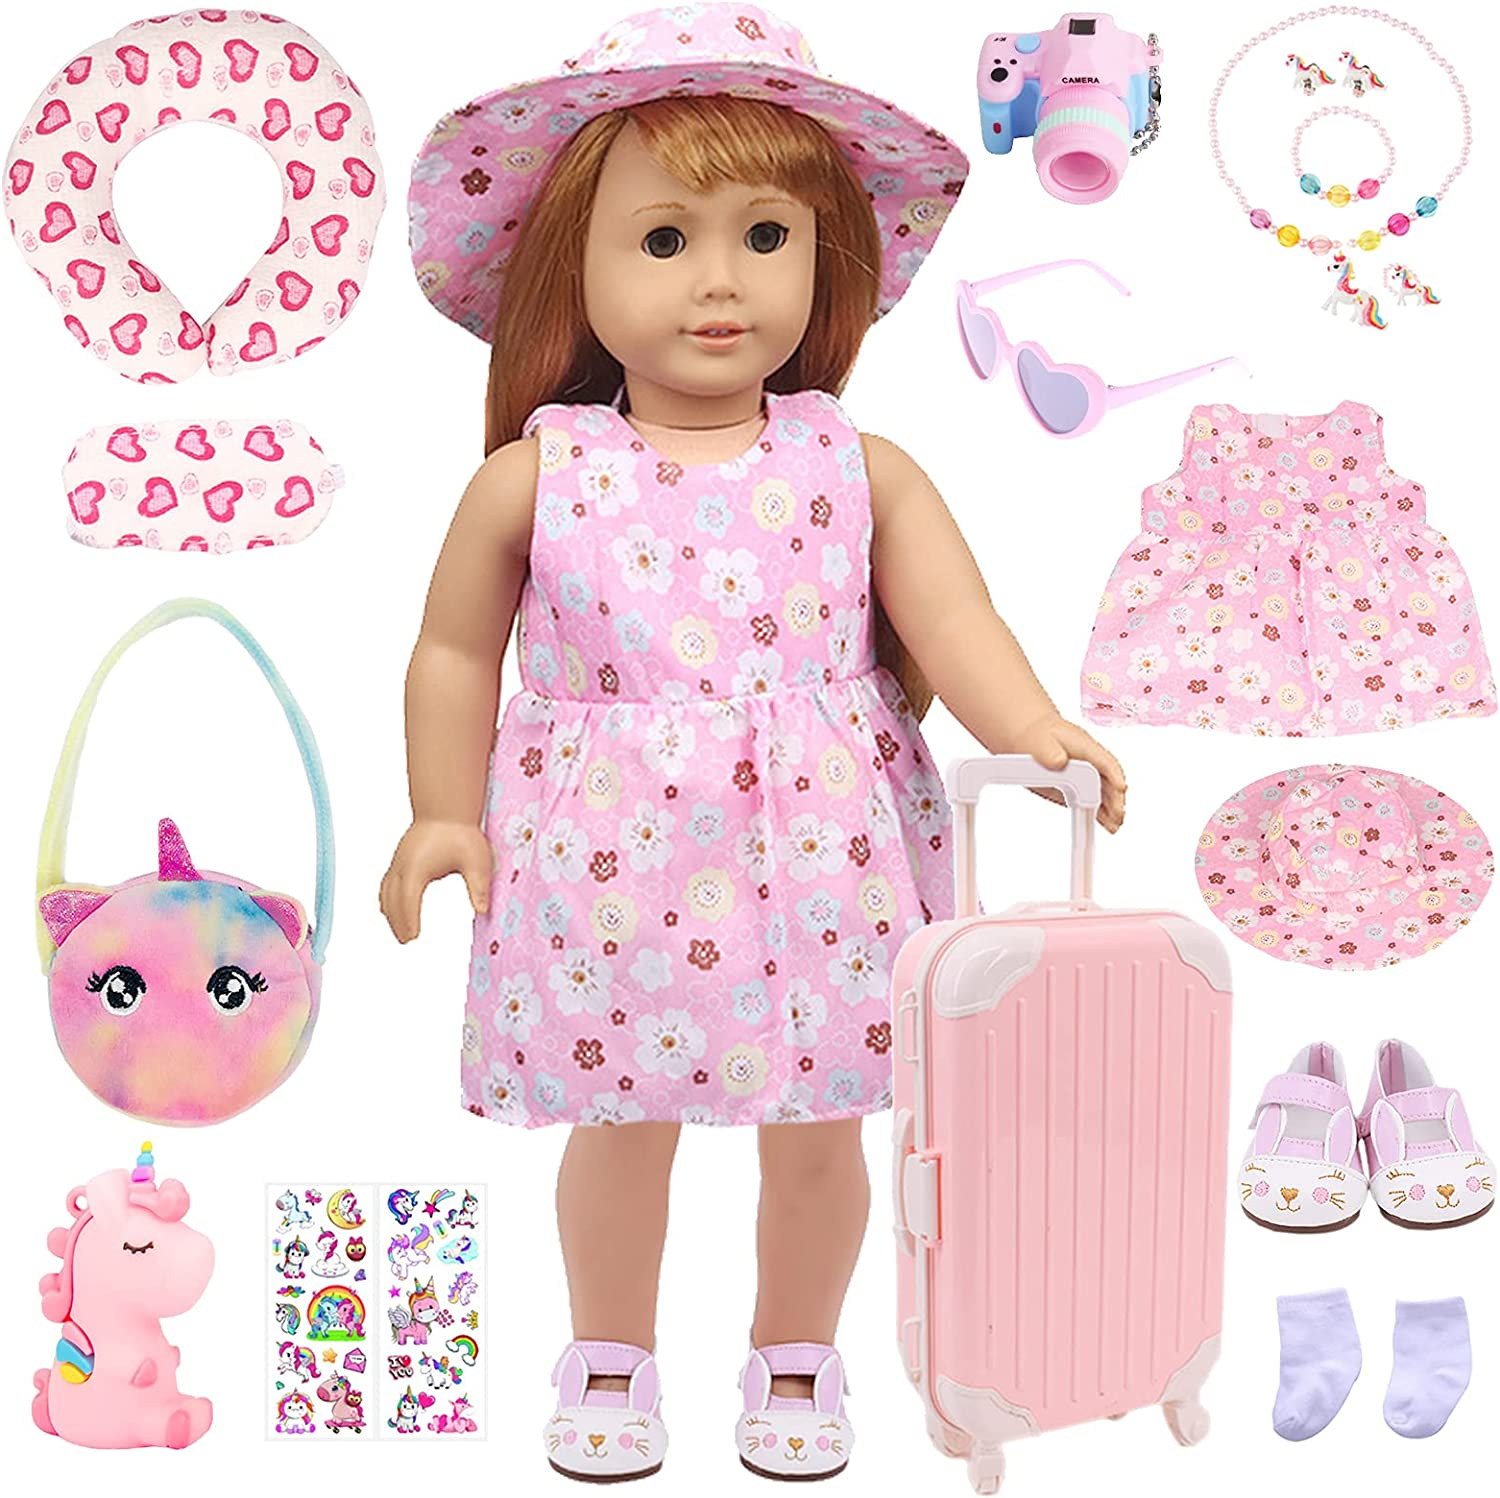 EIYOBYF Popularity 18 Pcs American Factory outlet Inch Set Luggage Suitcase Doll Travel